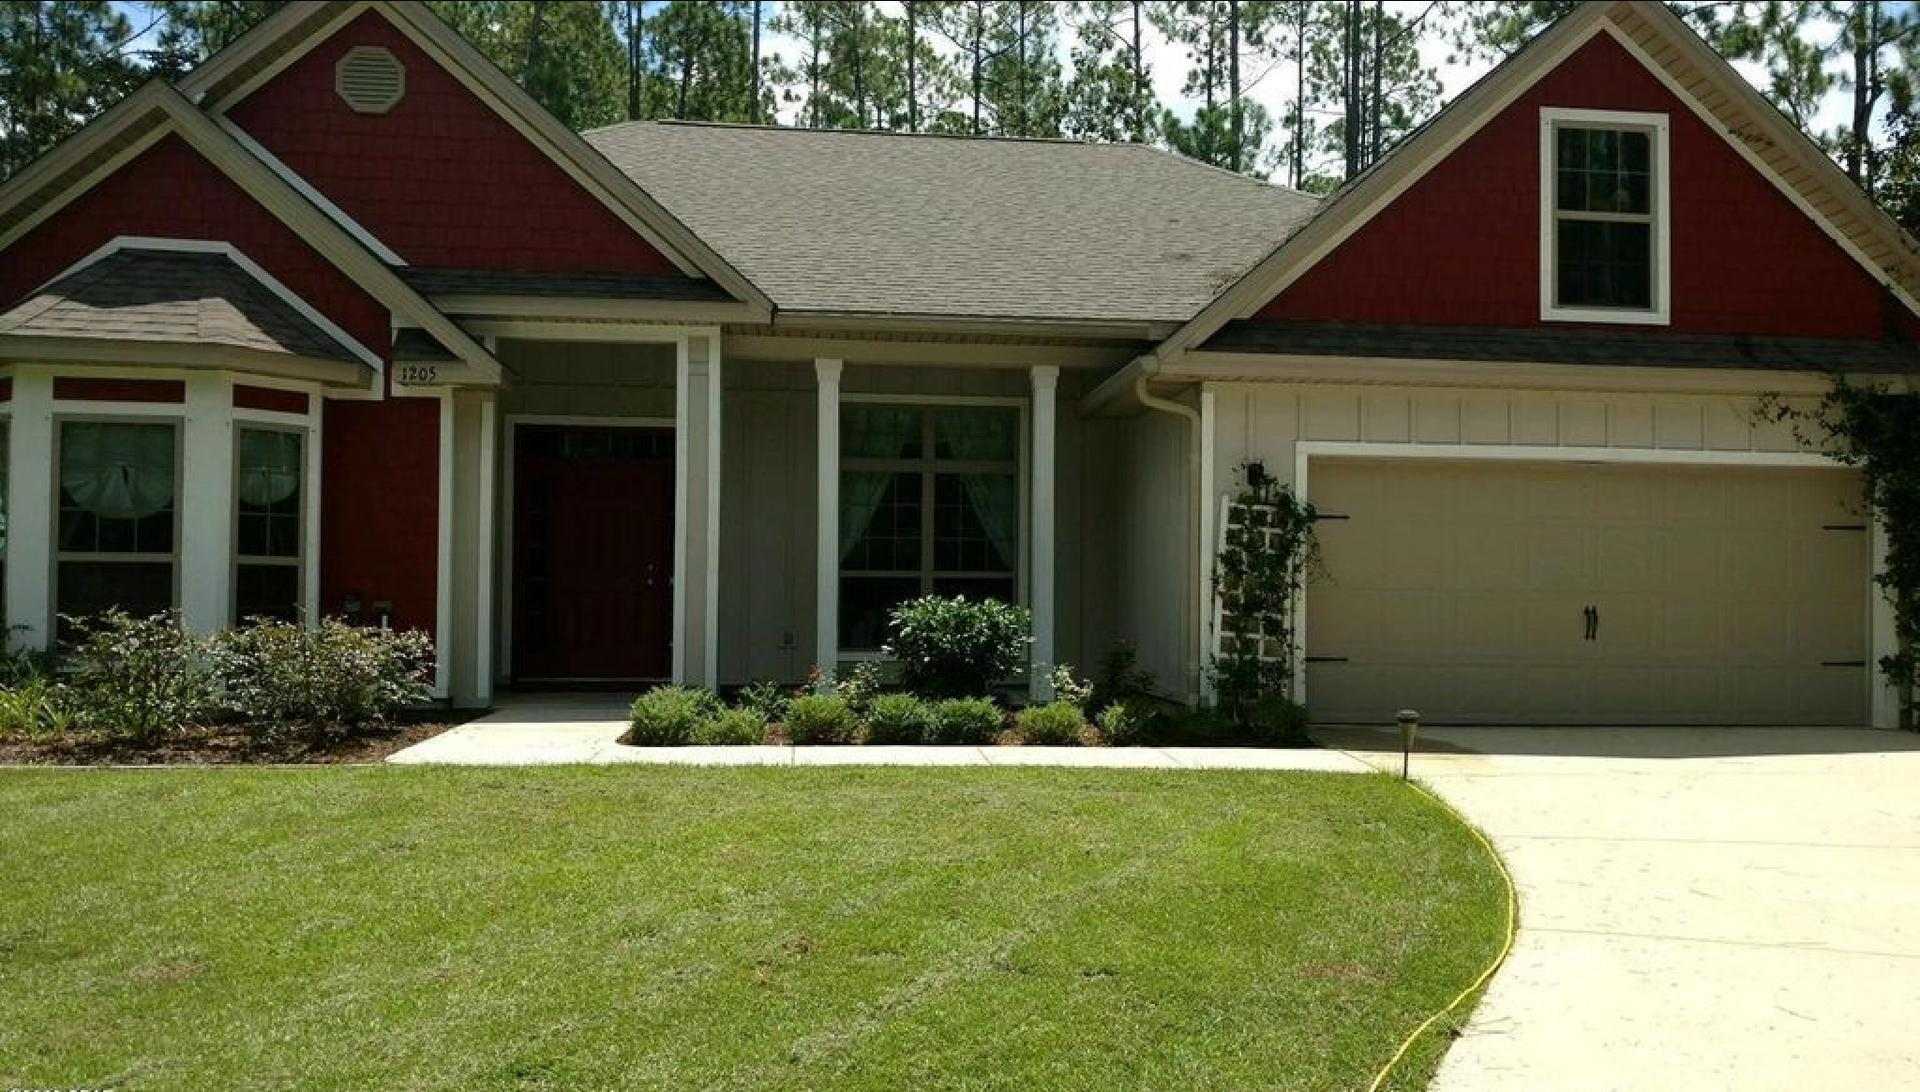 Photo of property: 1205 Top Sail Ct Panama City Fl 32404